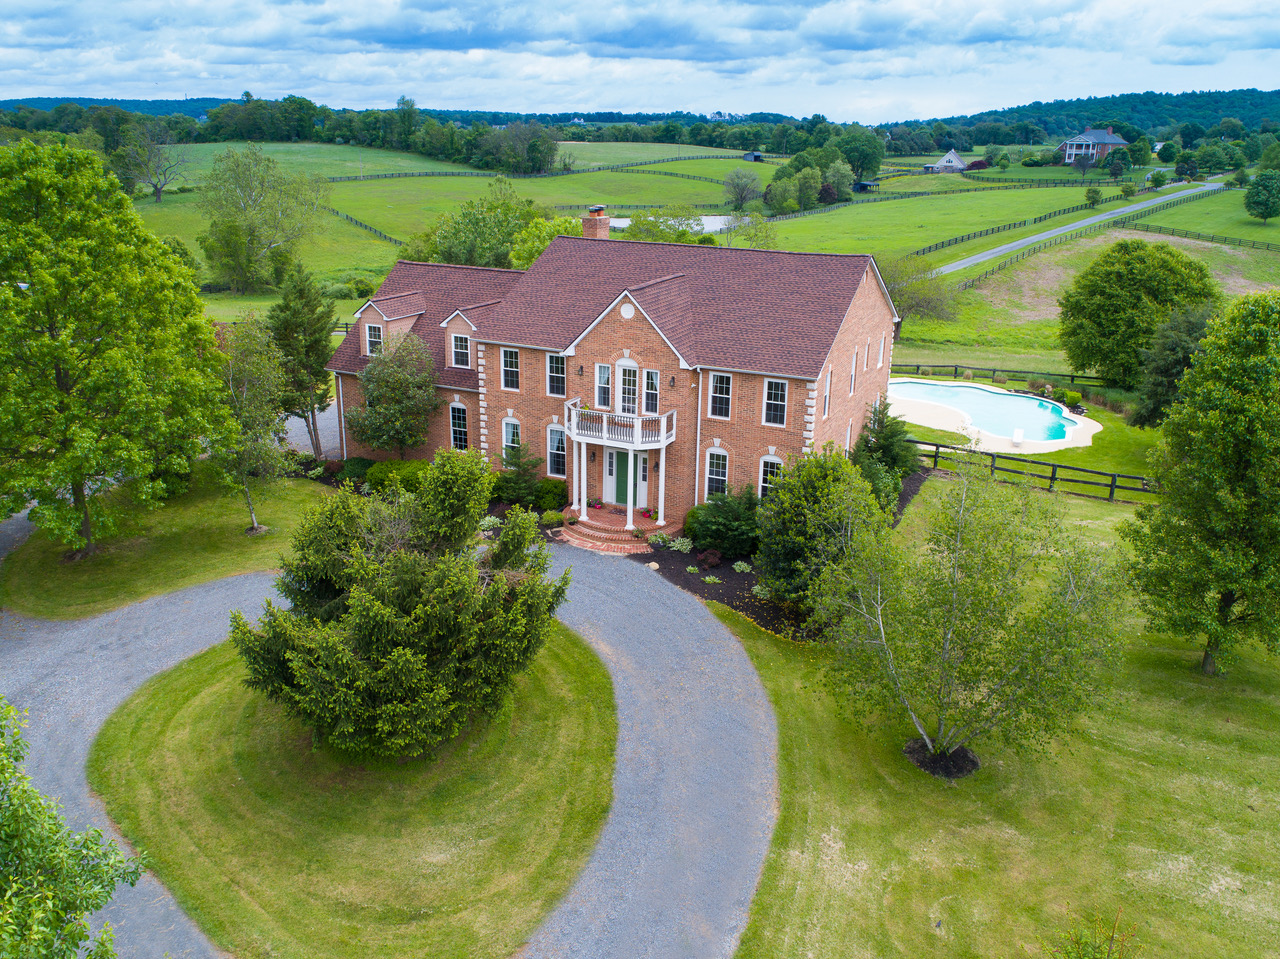 Single Family Home for Sale at Hamilton Station Road, Waterford VA 16050 Hamilton Station Road Waterford, Virginia 20197 United States